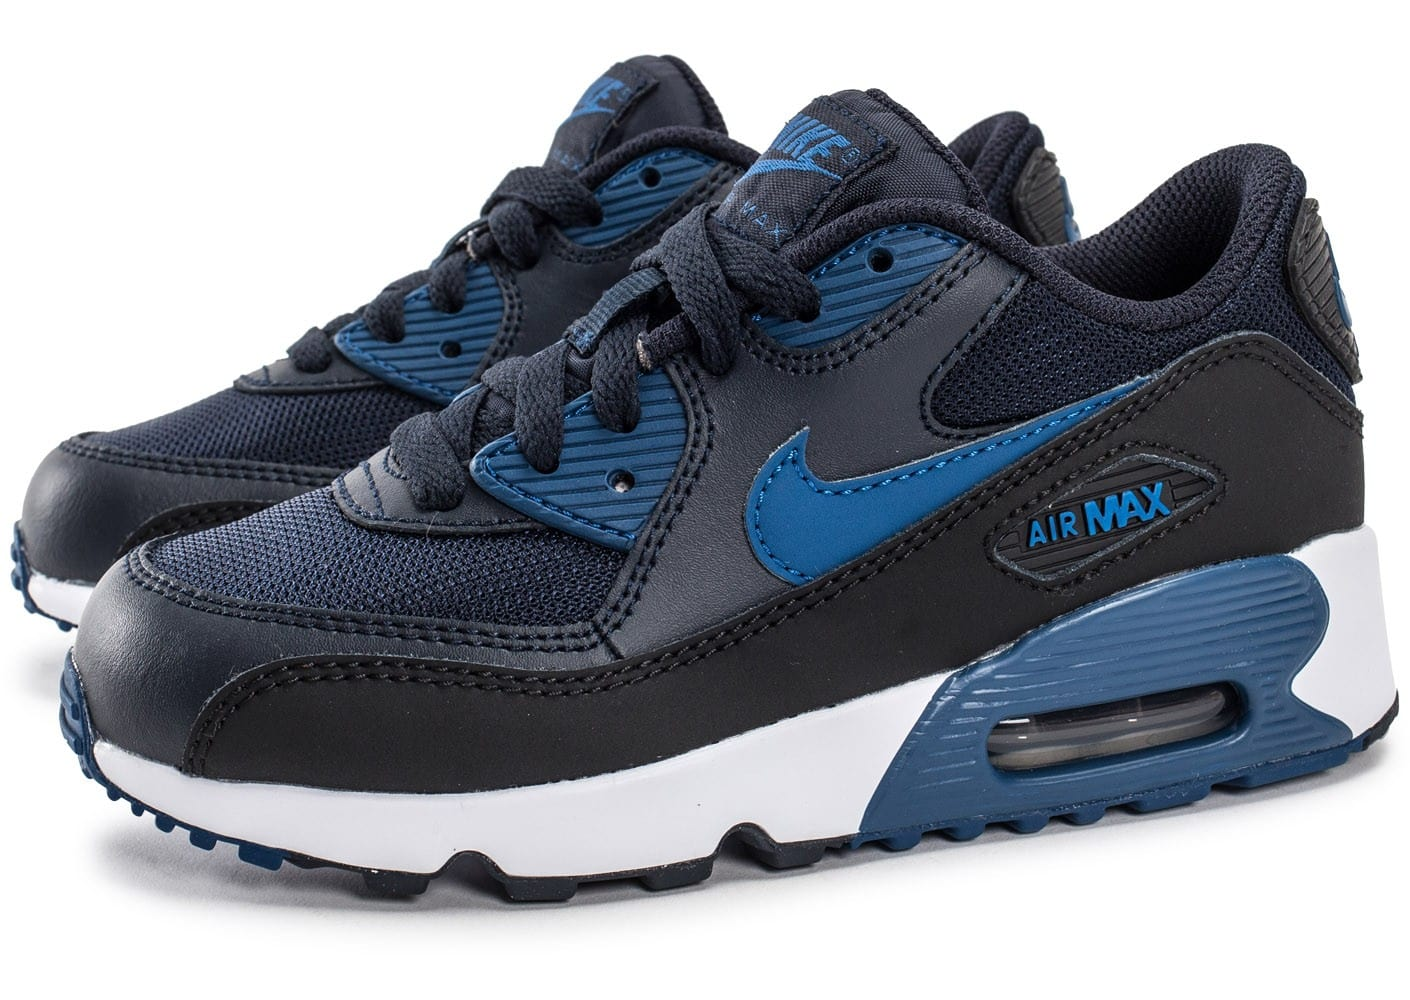 nike air max 90 mesh enfant bleu marine chaussures enfant chausport. Black Bedroom Furniture Sets. Home Design Ideas